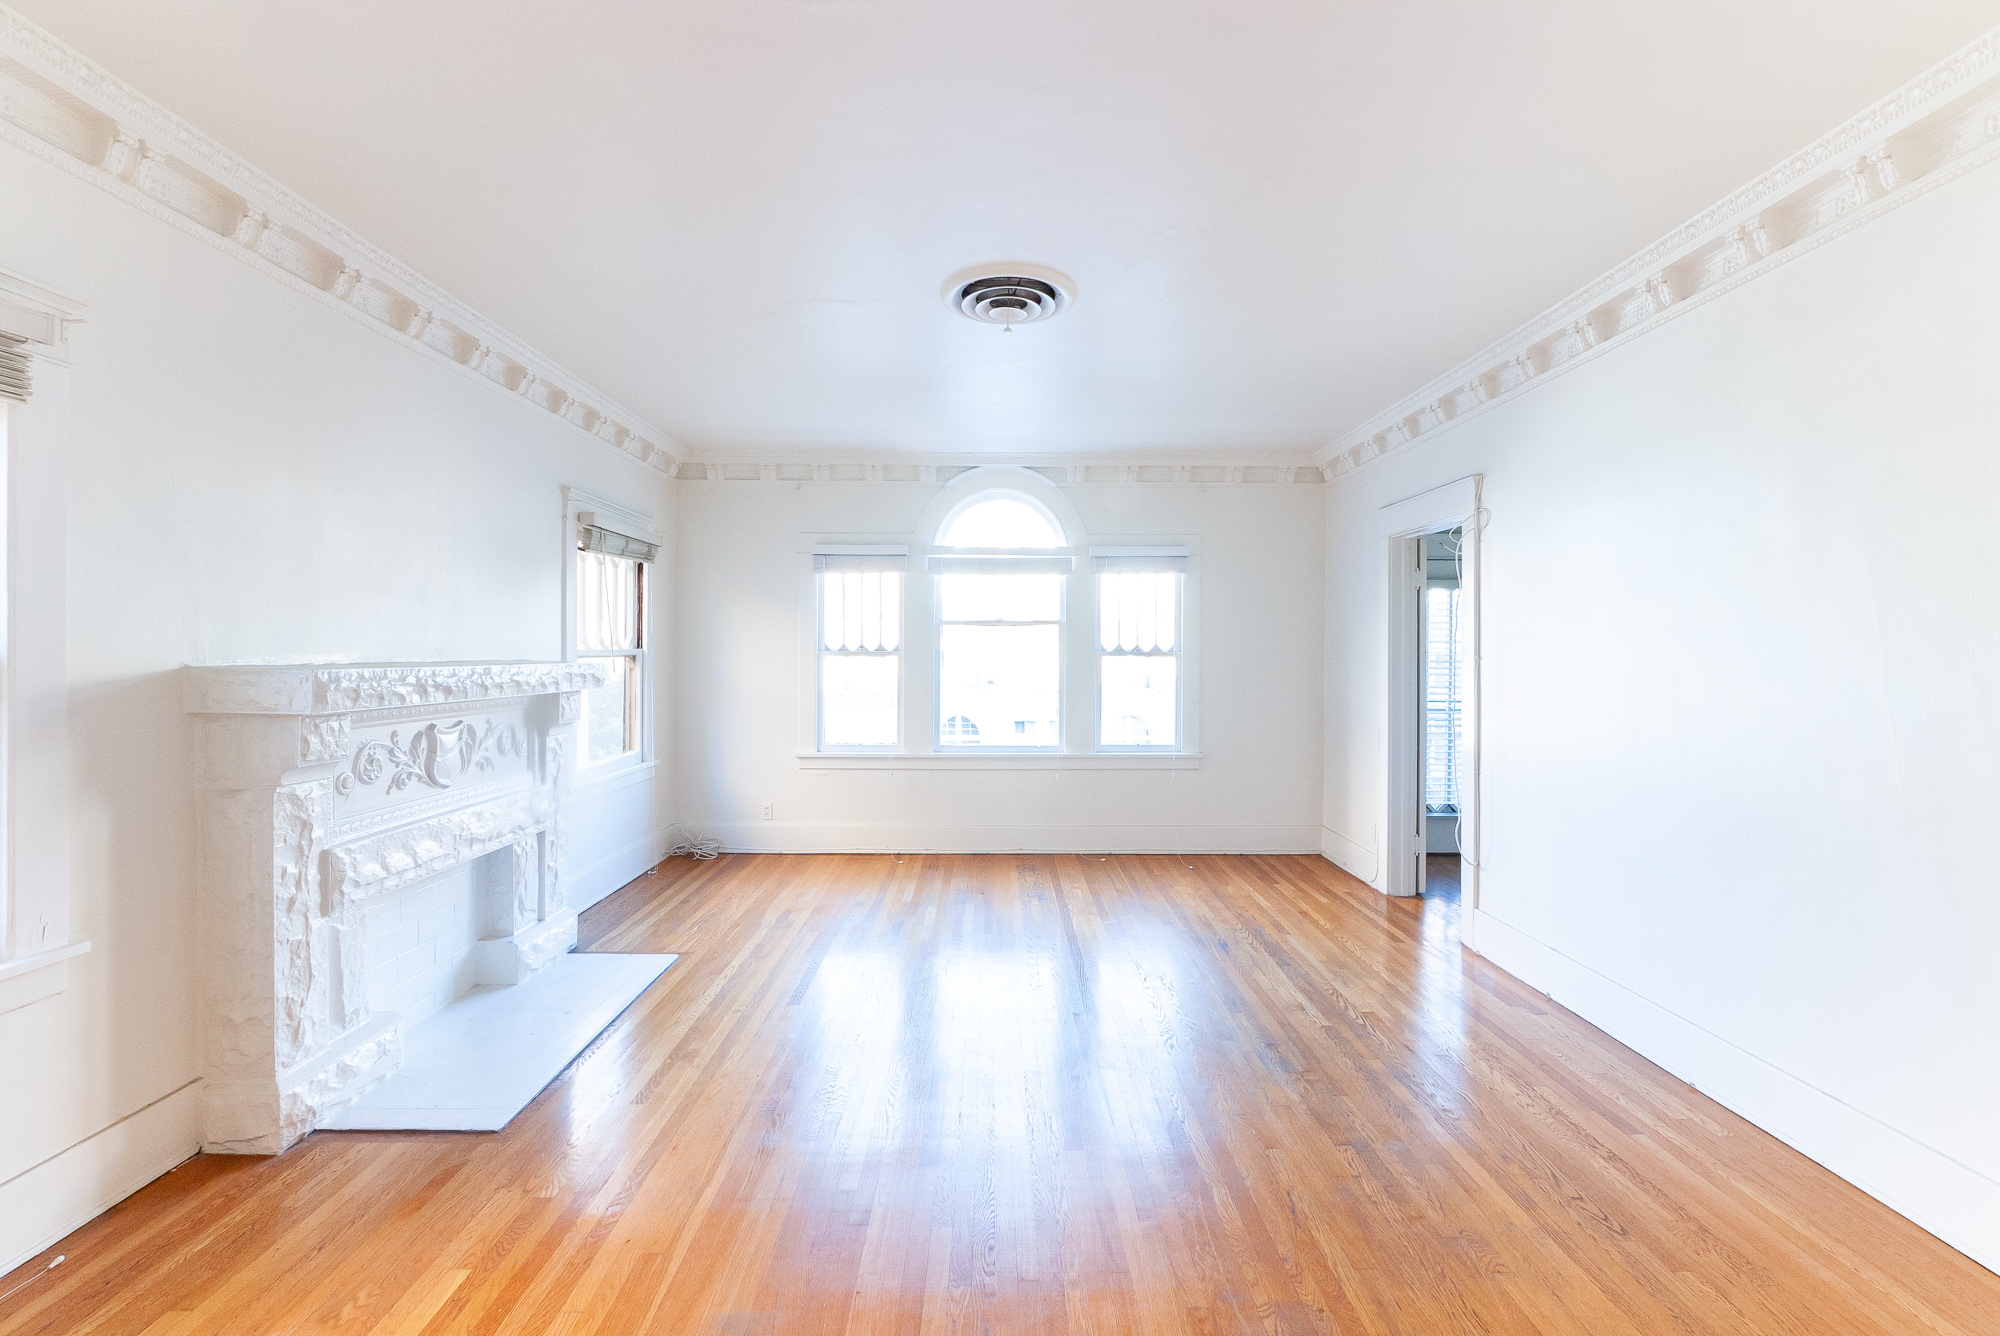 Old World Beauty! Sprawling Upper  2 Bed/1Bath - Real Hardwoods - Washer/Dryer Hookups - Garage - Perfect K-Town Location!